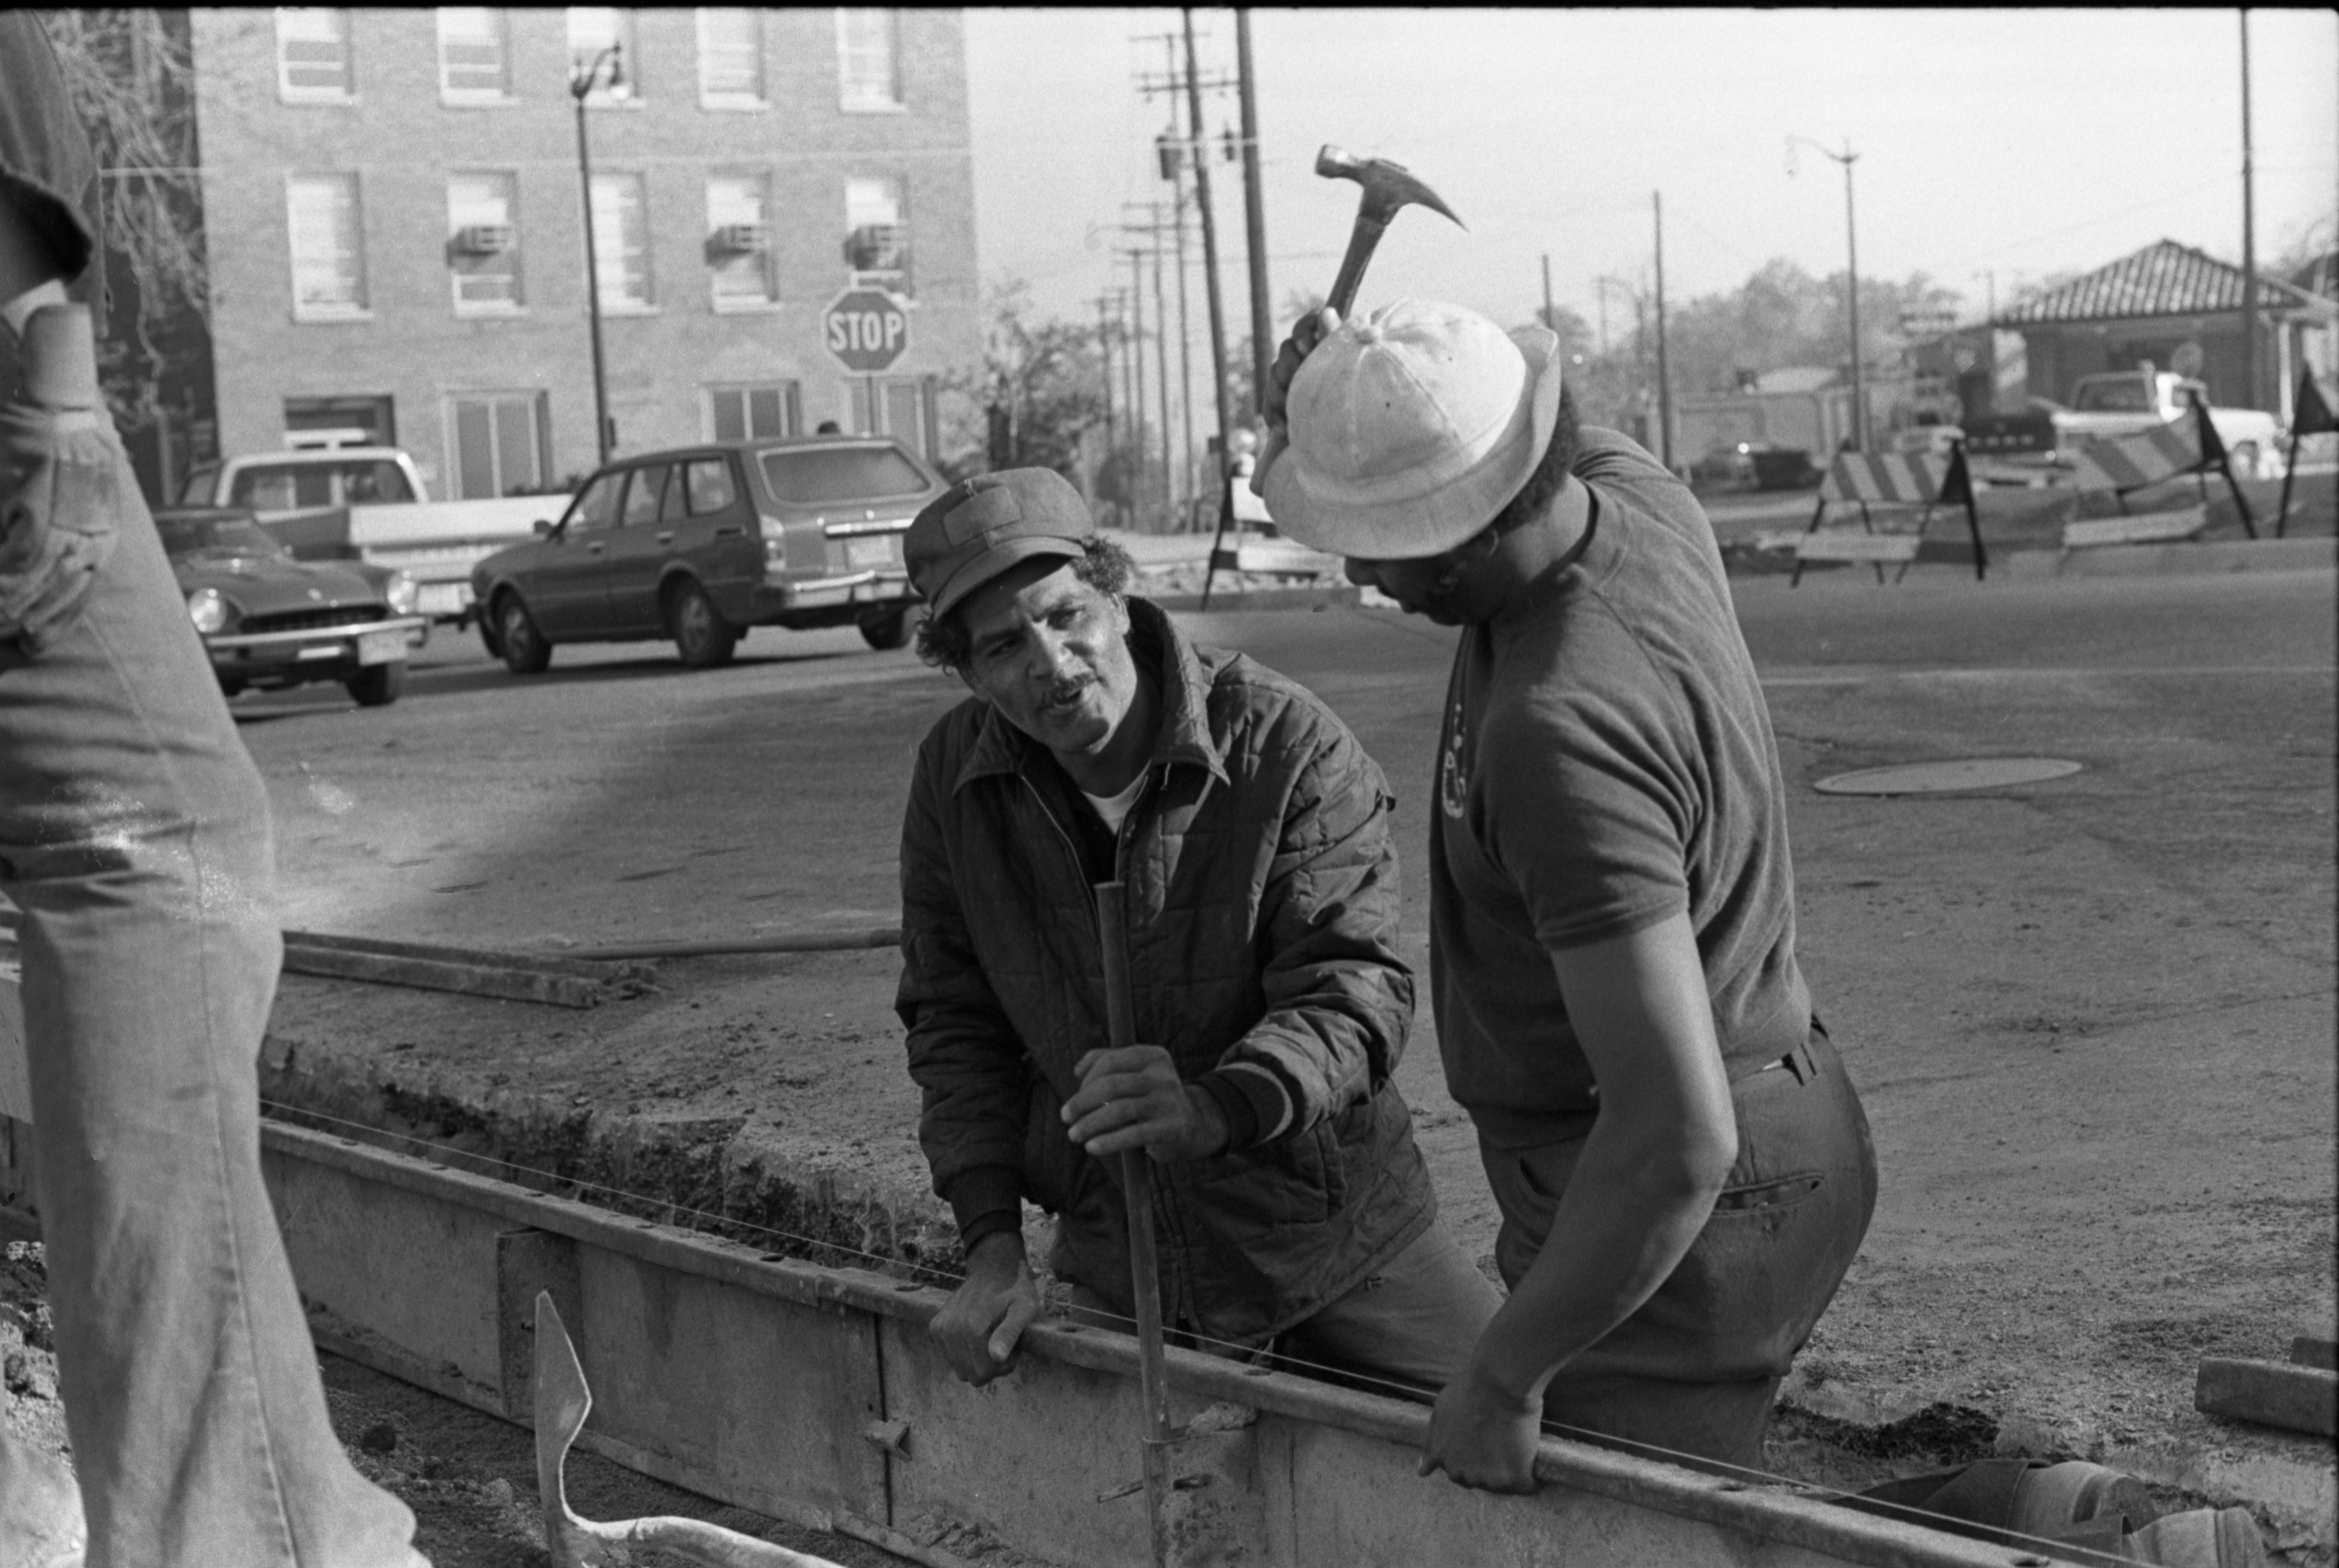 Calvert Brothers Employees Jesse Campbell, On Right, & Marvin Baker Work On N. Fourth Avenue, October 1977 image